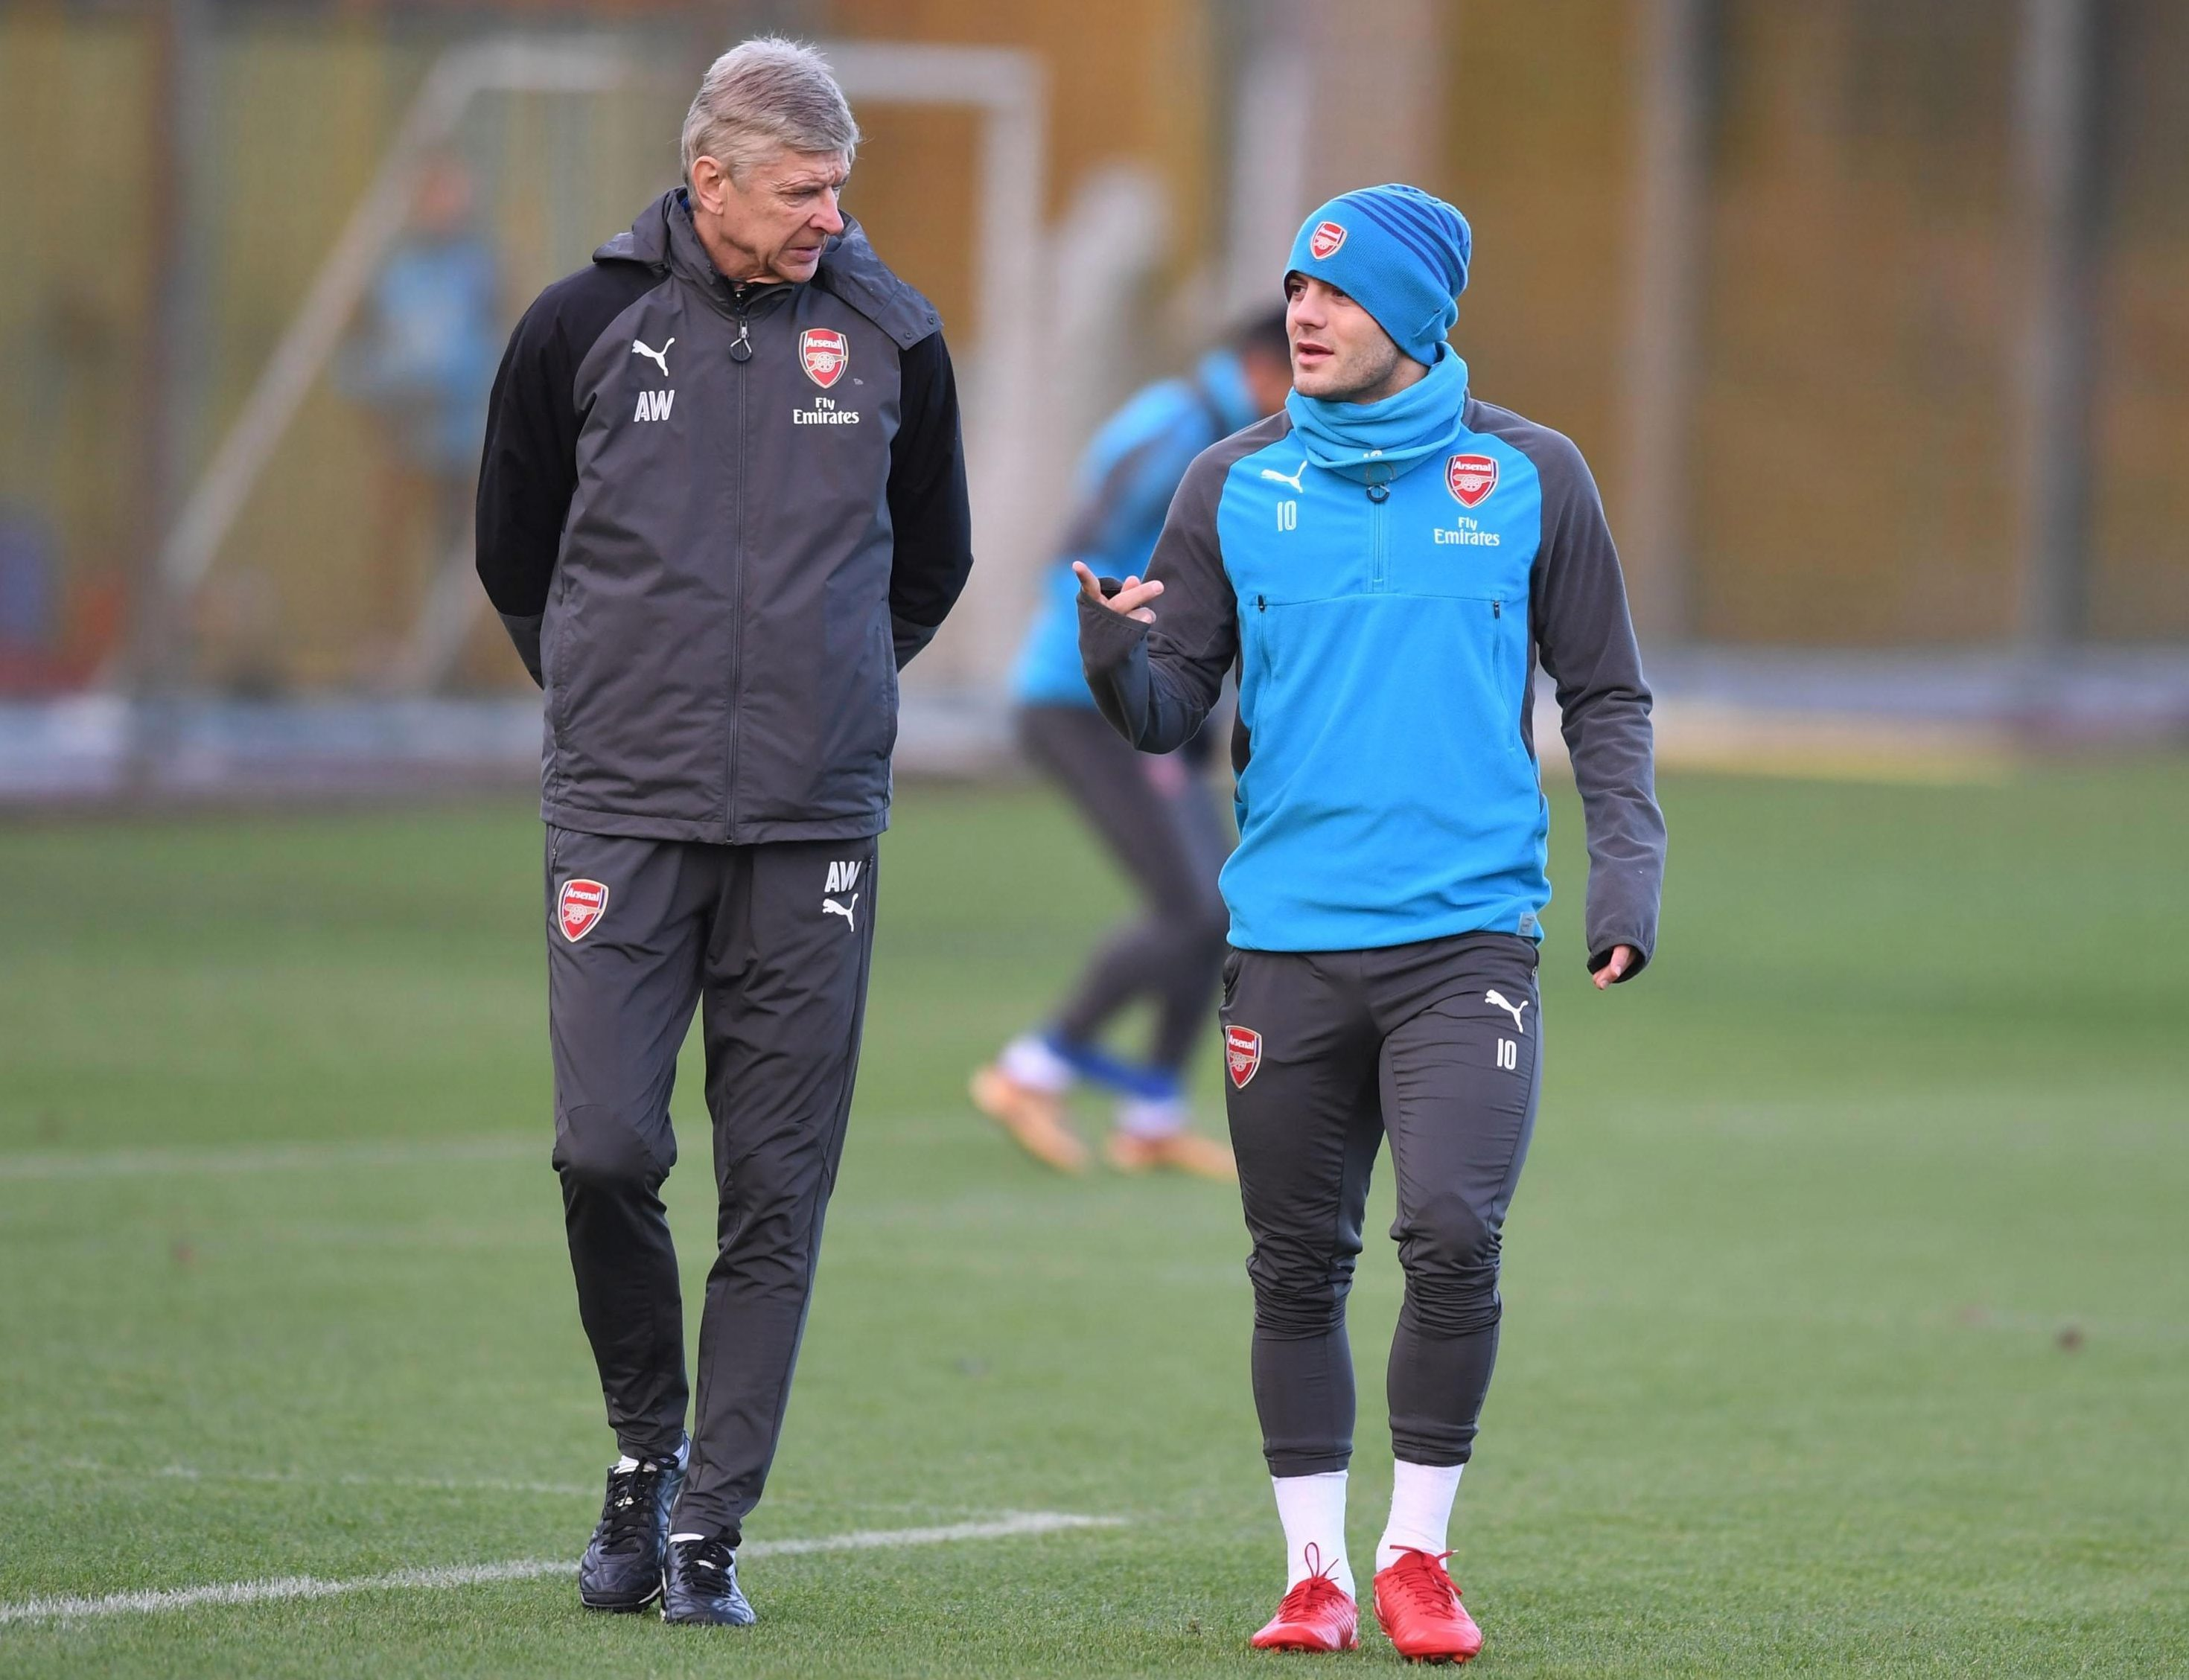 Arsenal transfer news: Jack Wilshere raises fresh fears over new deal as he says he is 'no closer' to sorting contract